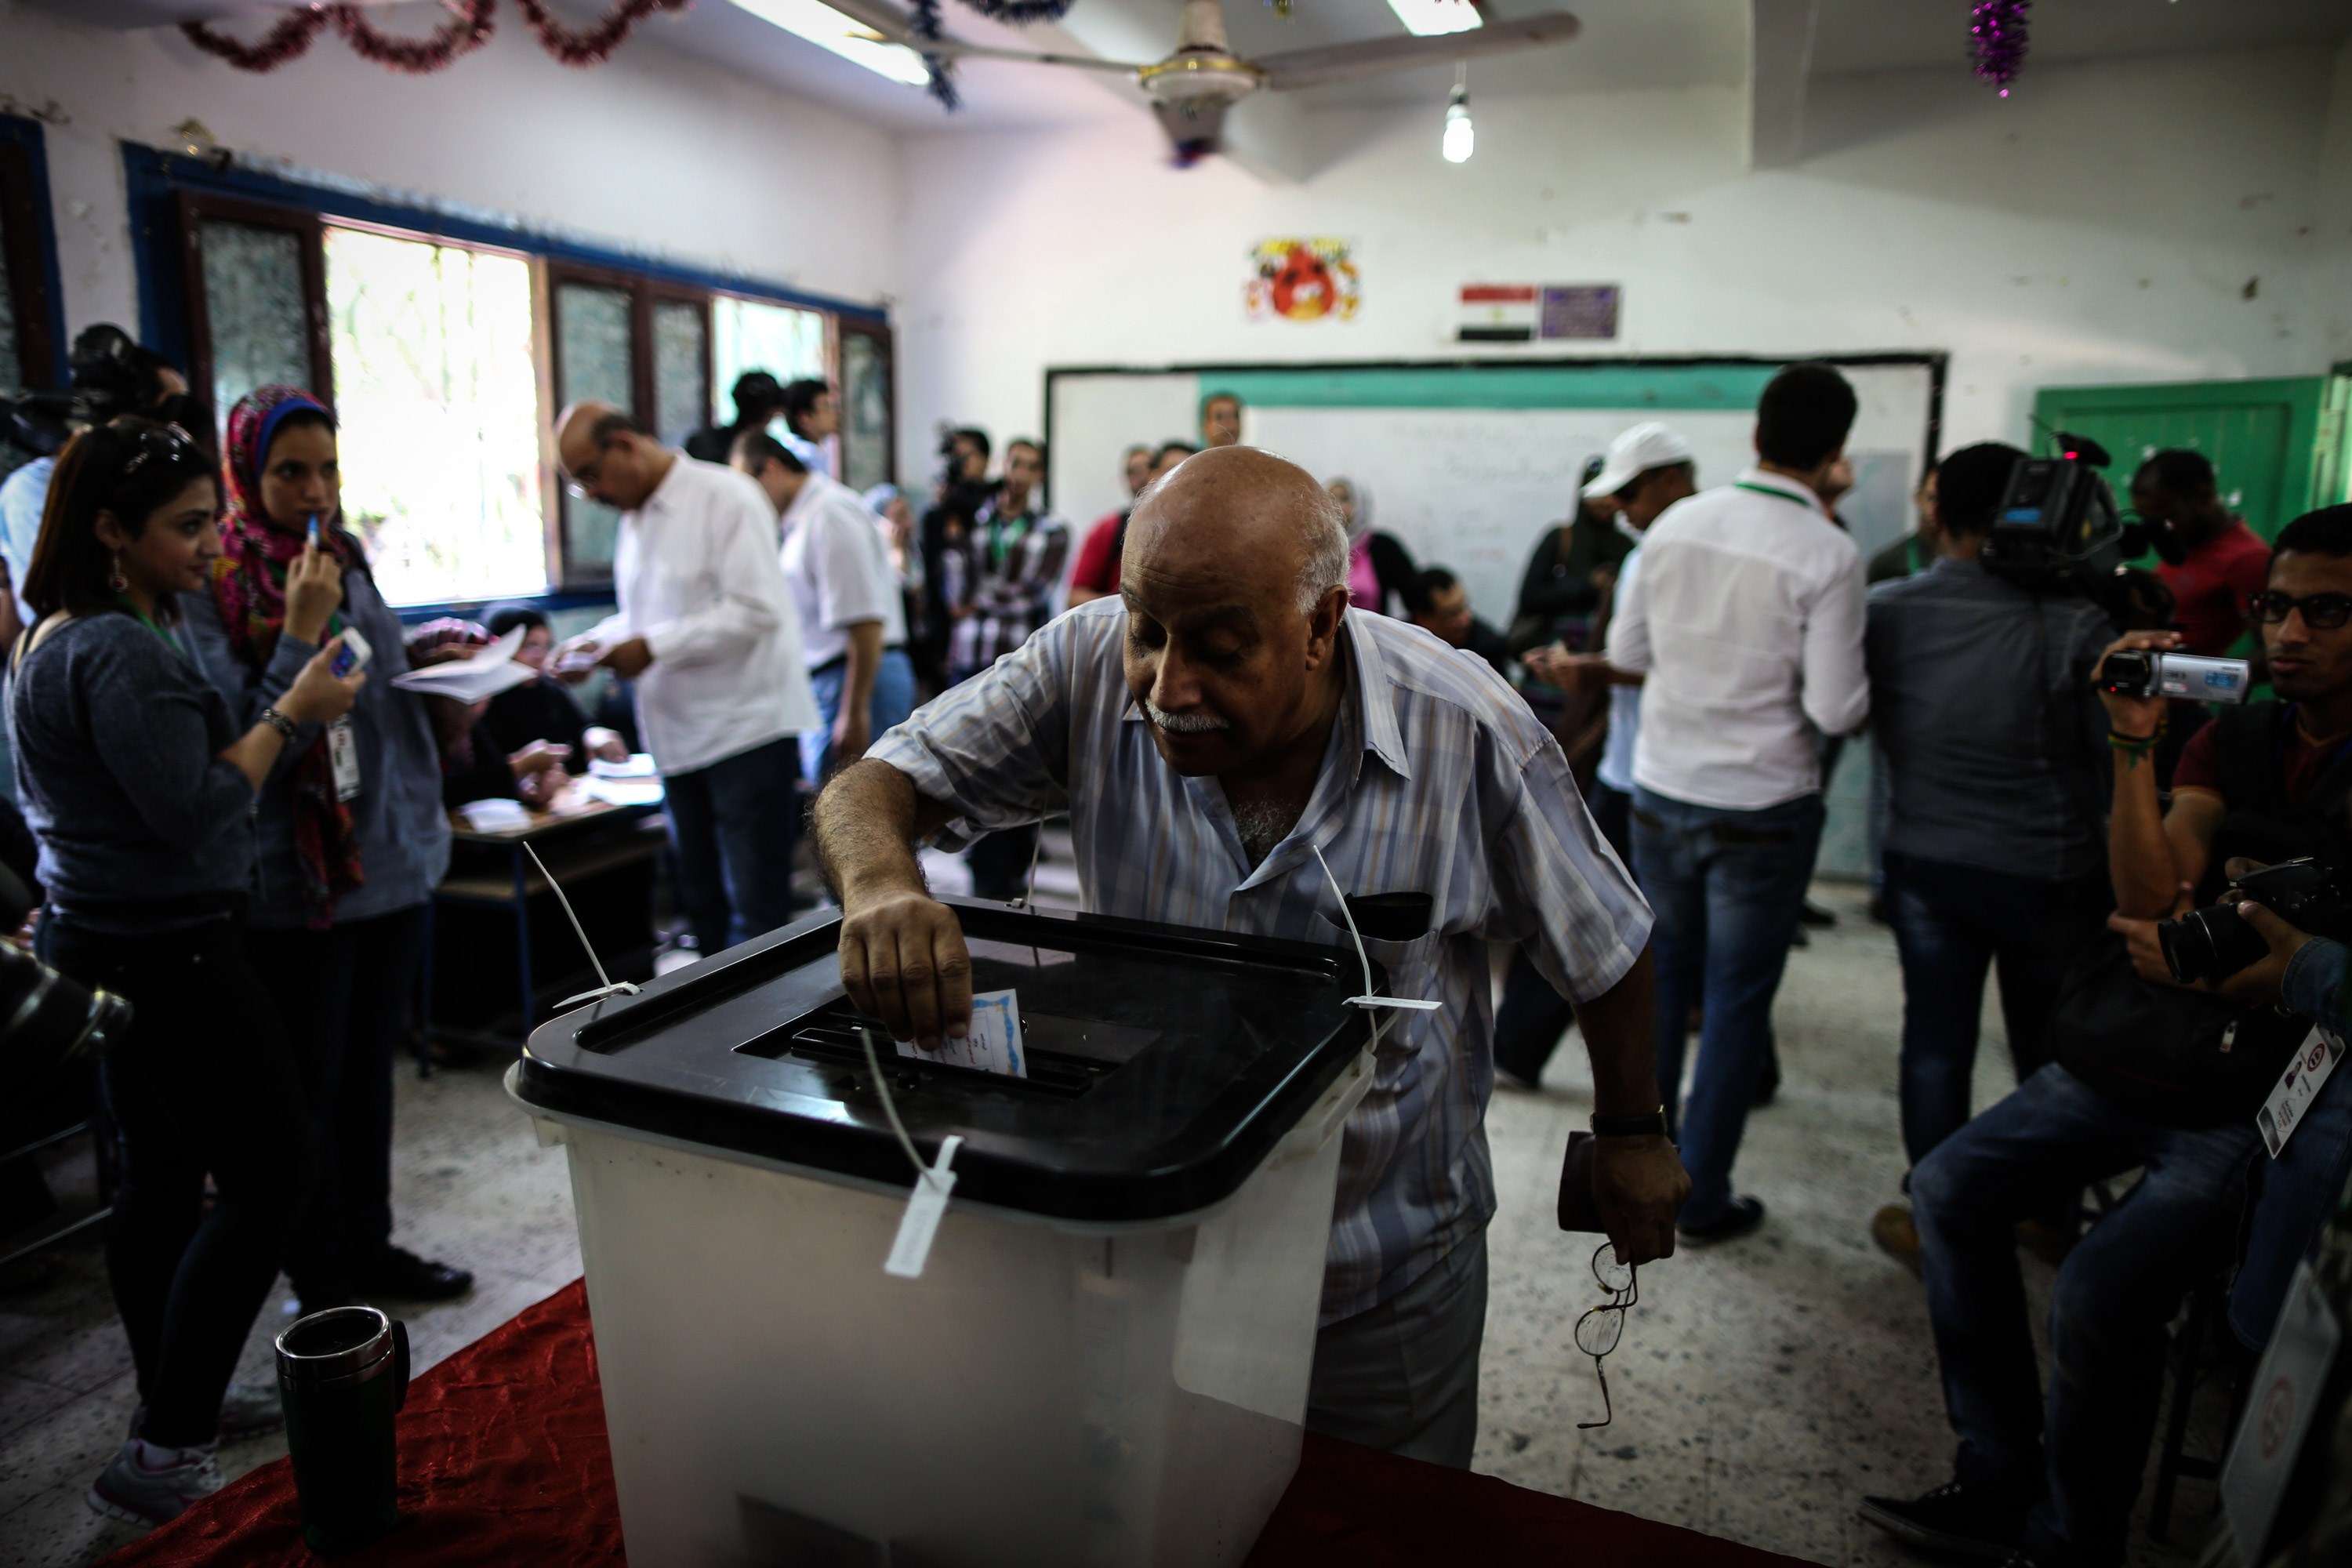 An Egyptian man casts his vote at a polling station in the capital Cairo on May 26, 2014. Egyptians voted for a new president, with the ex-army chief who overthrew the country's first democratically elected leader and crushed his Islamist movement expected to win in a landslide.  (AFP PHOTO/MOHAMED EL-SHAHED)